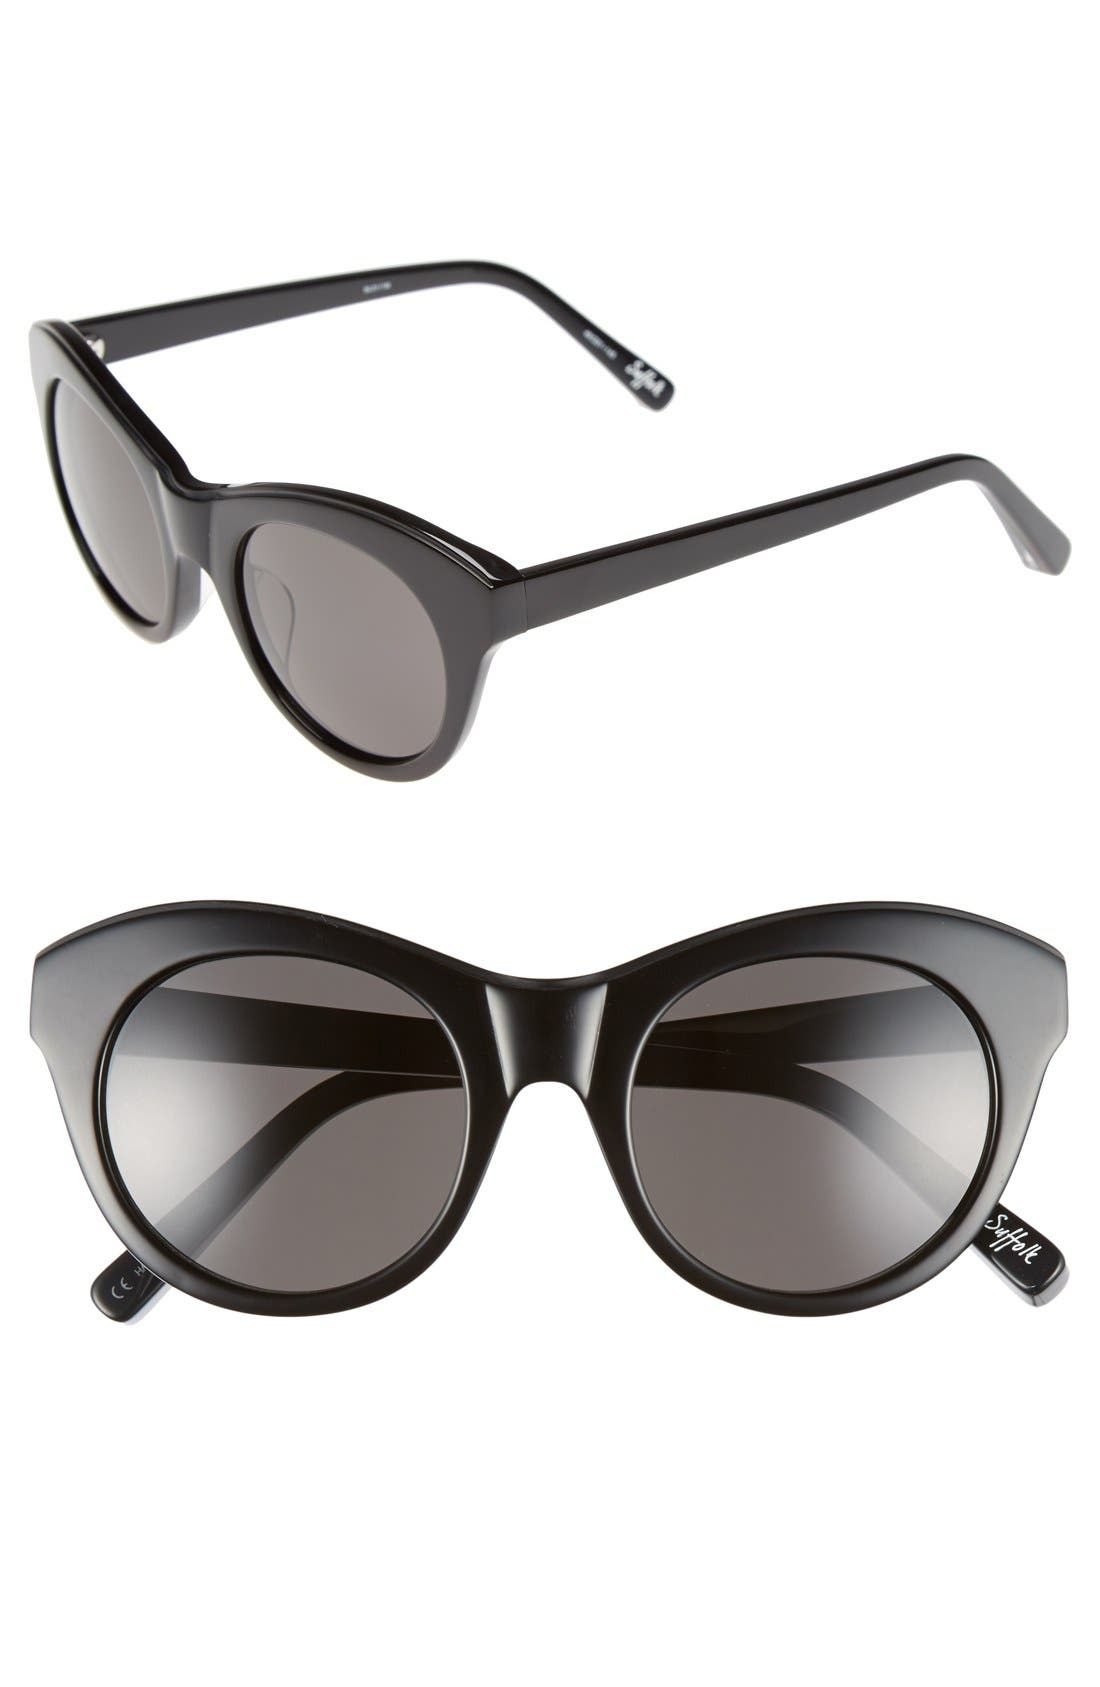 Main Image - Elizabeth and James 'Suffolk' 49mm Cat Eye Sunglasses